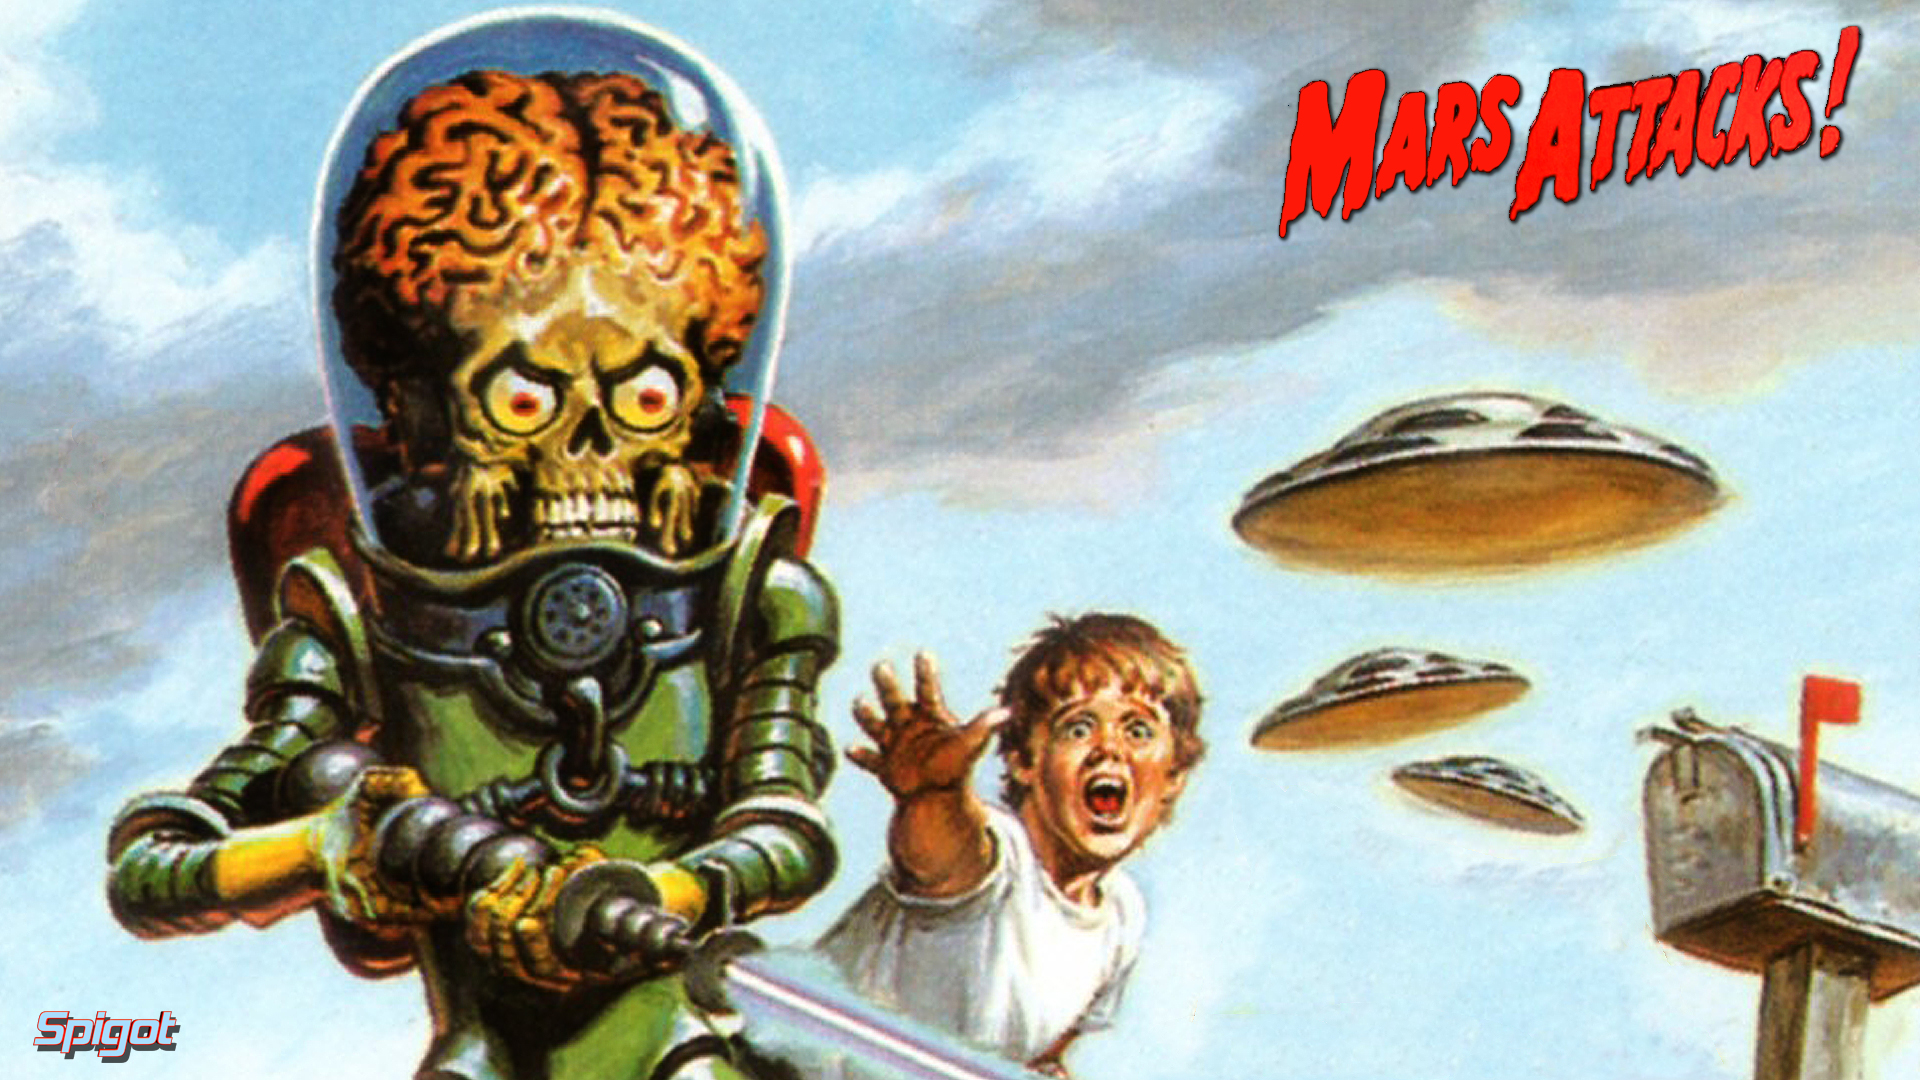 Mars Attacks Wallpapers George Spigots Blog